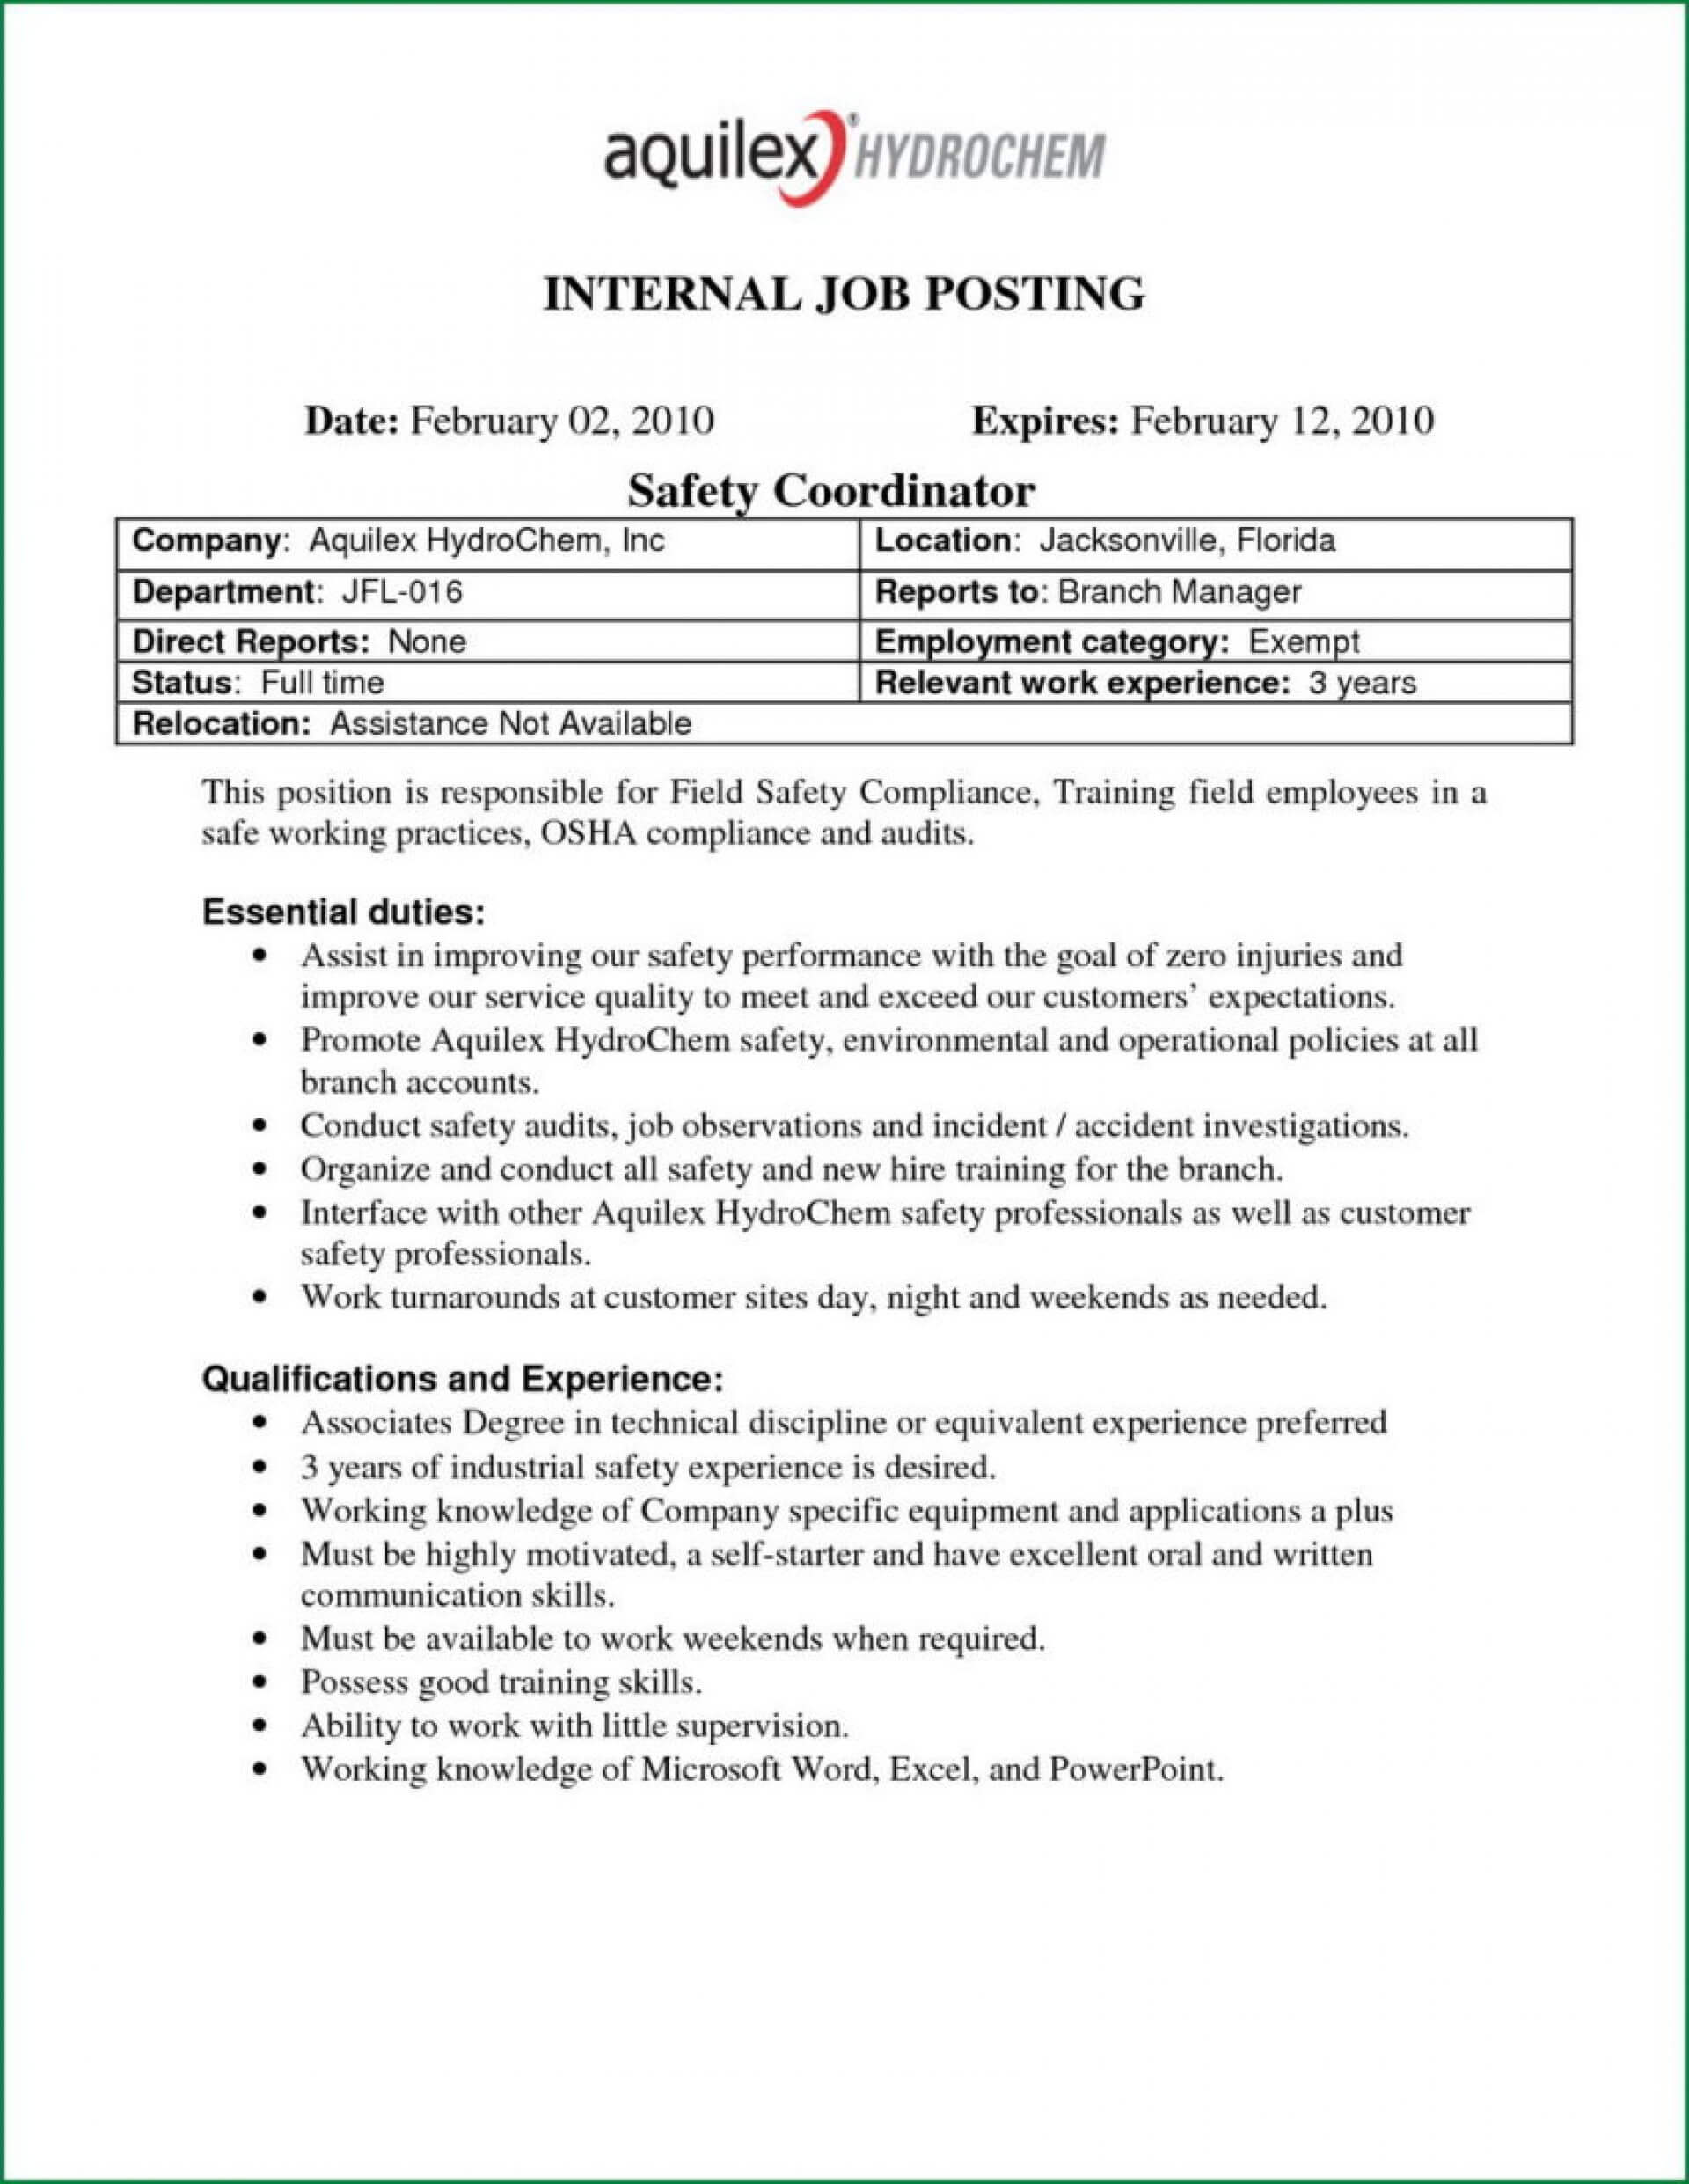 008 Template Ideas Cover Letter Example Internal Job Posting Inside Internal Job Posting Template Word